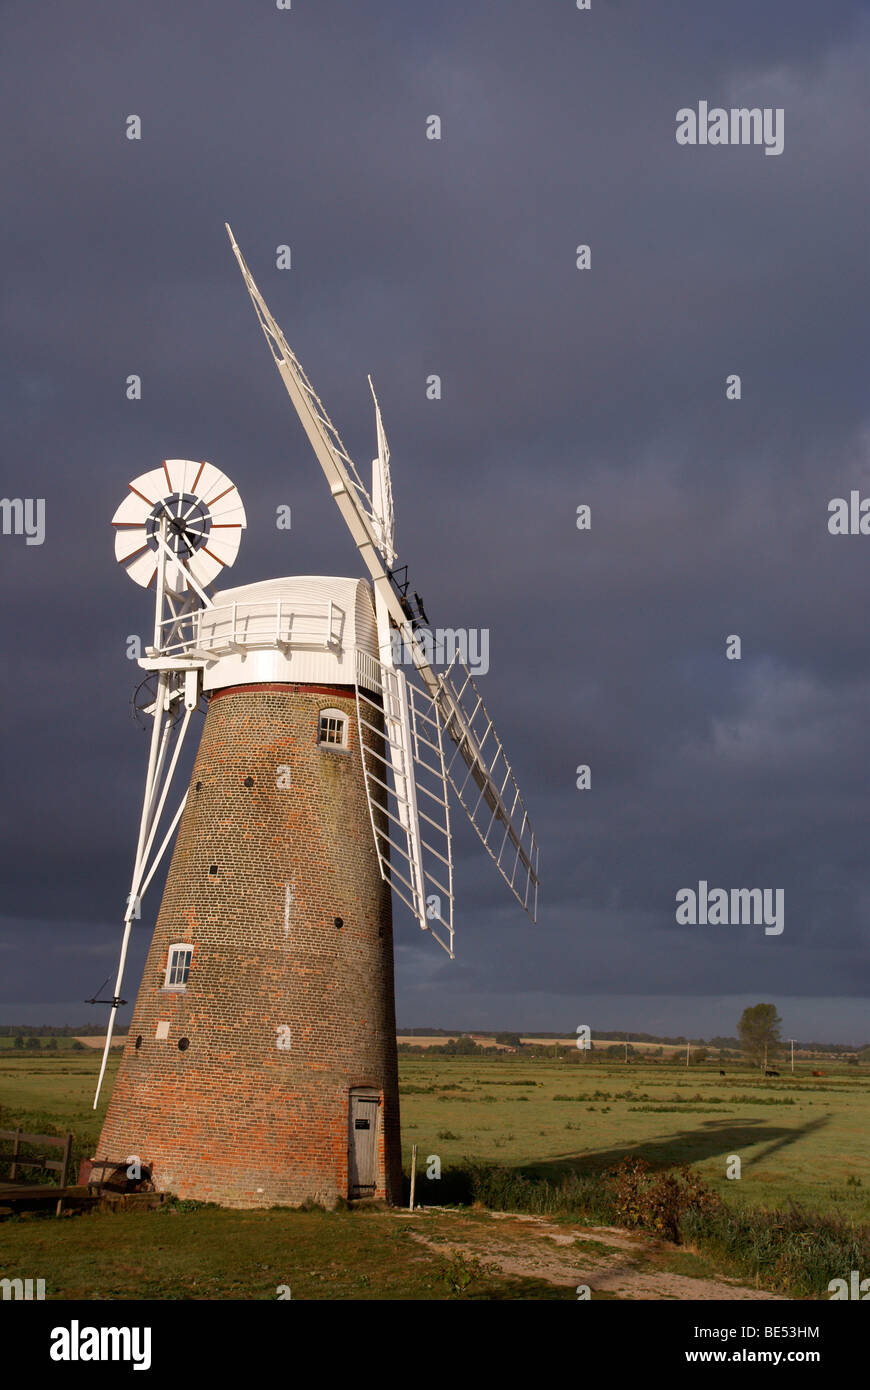 Morning sunlight catches Hardley drainage mill against a stormy dark sky - Stock Image